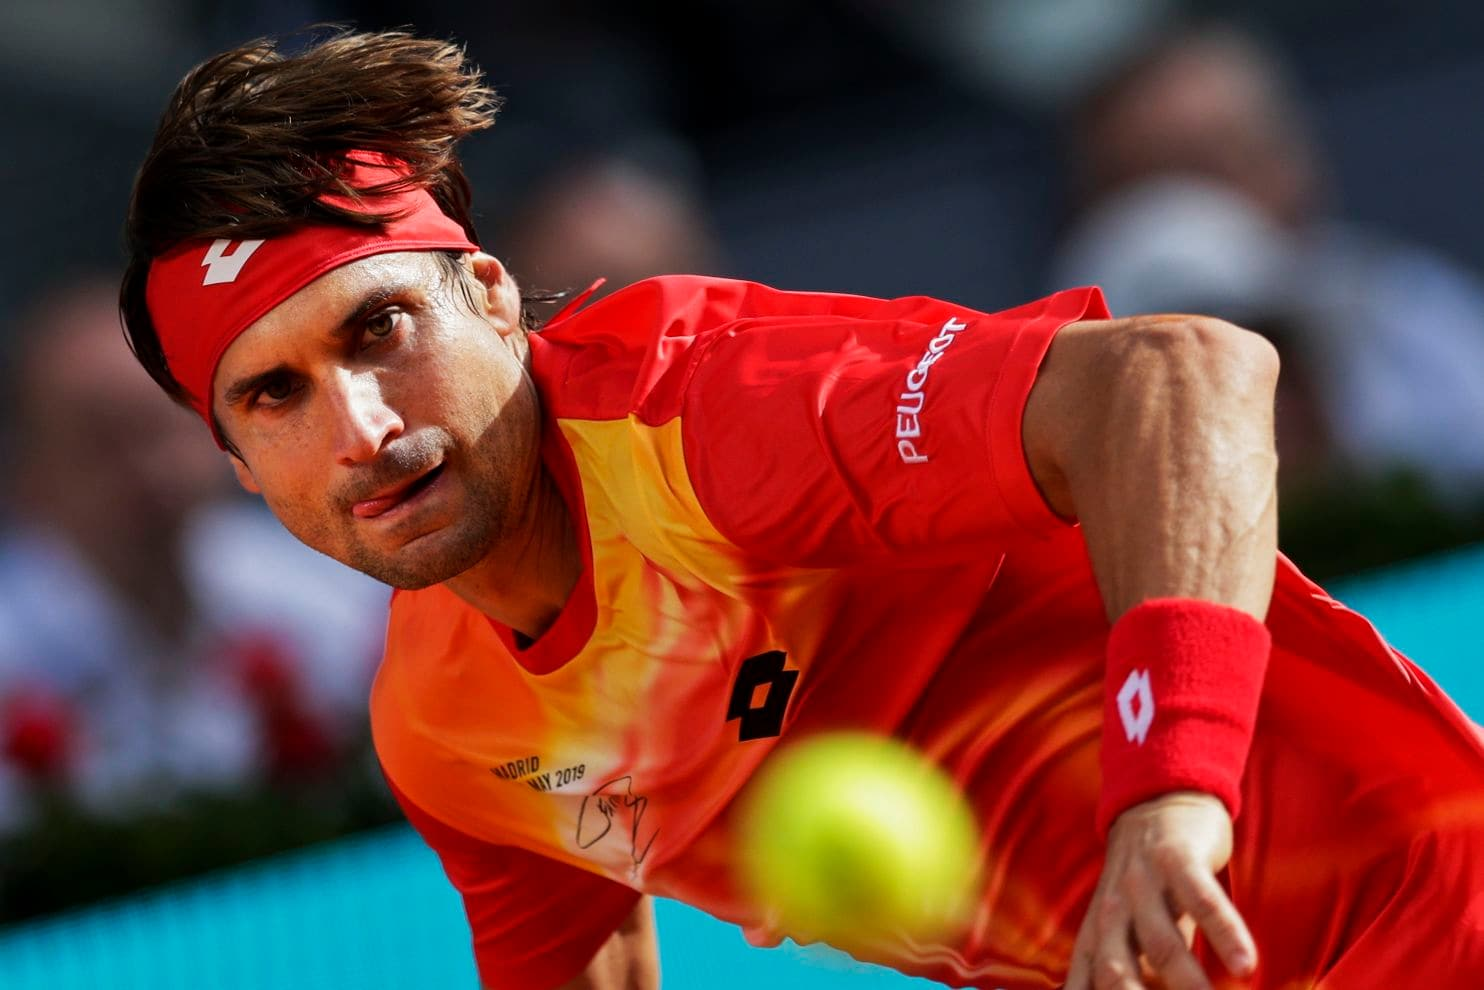 david ferrer retires tennis with loss to alexander zverev at madrid open